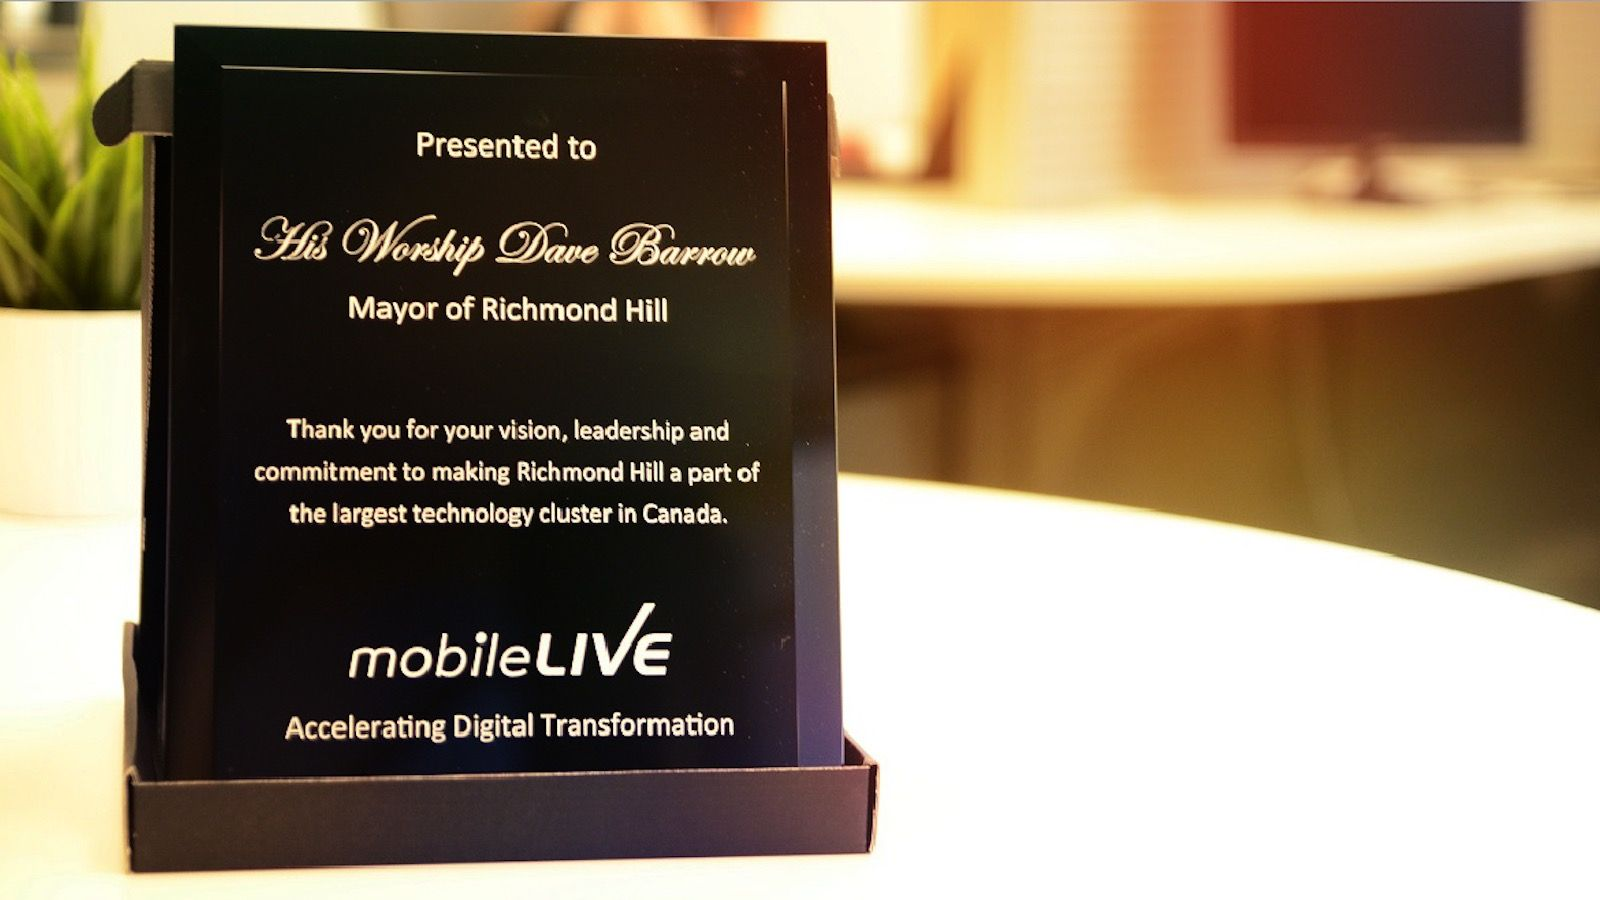 plaque of recognition from the Mayor of Richmond Hill